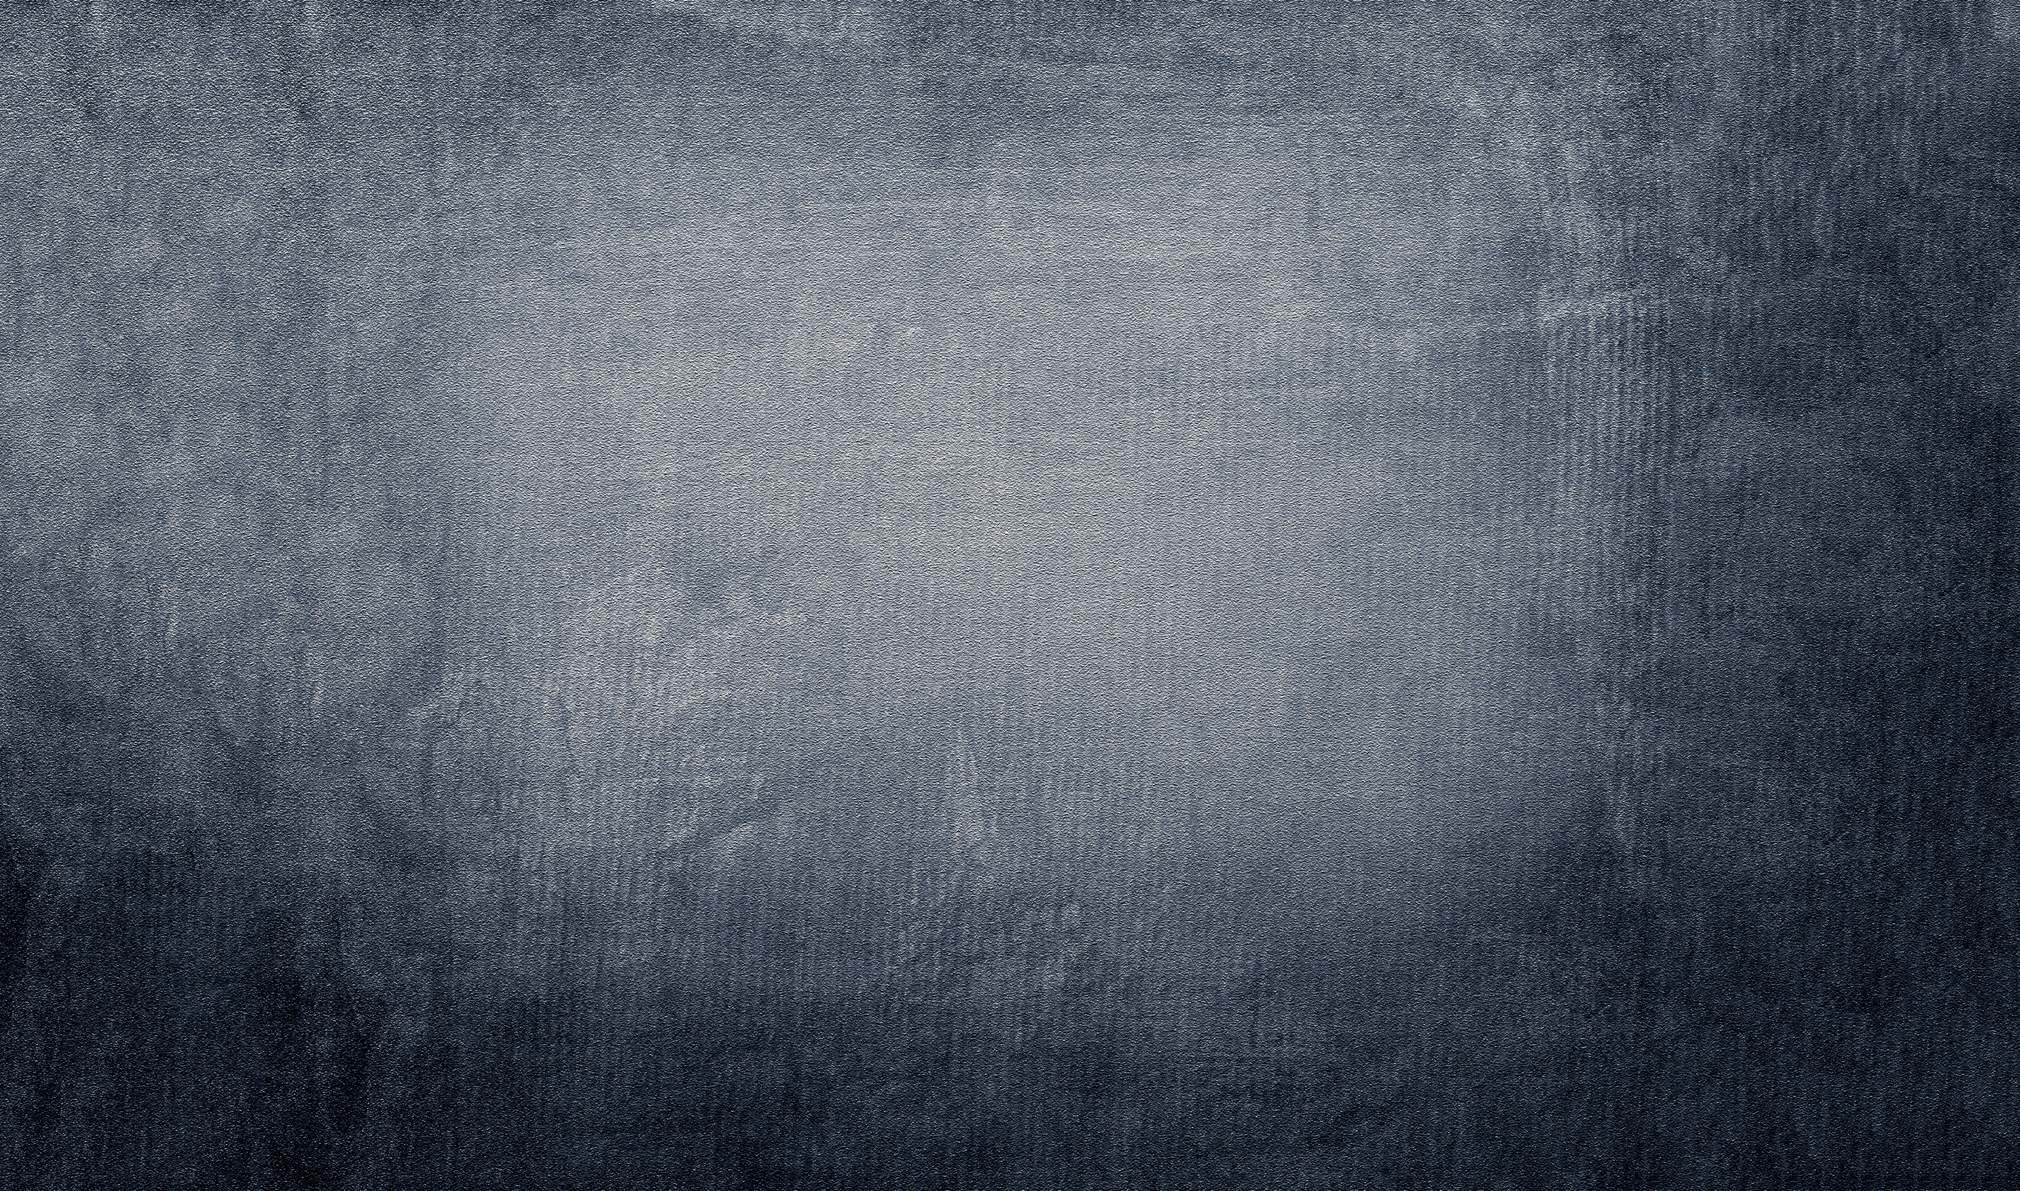 Grey dark vintage background texture photohdx for Black white and grey wallpaper